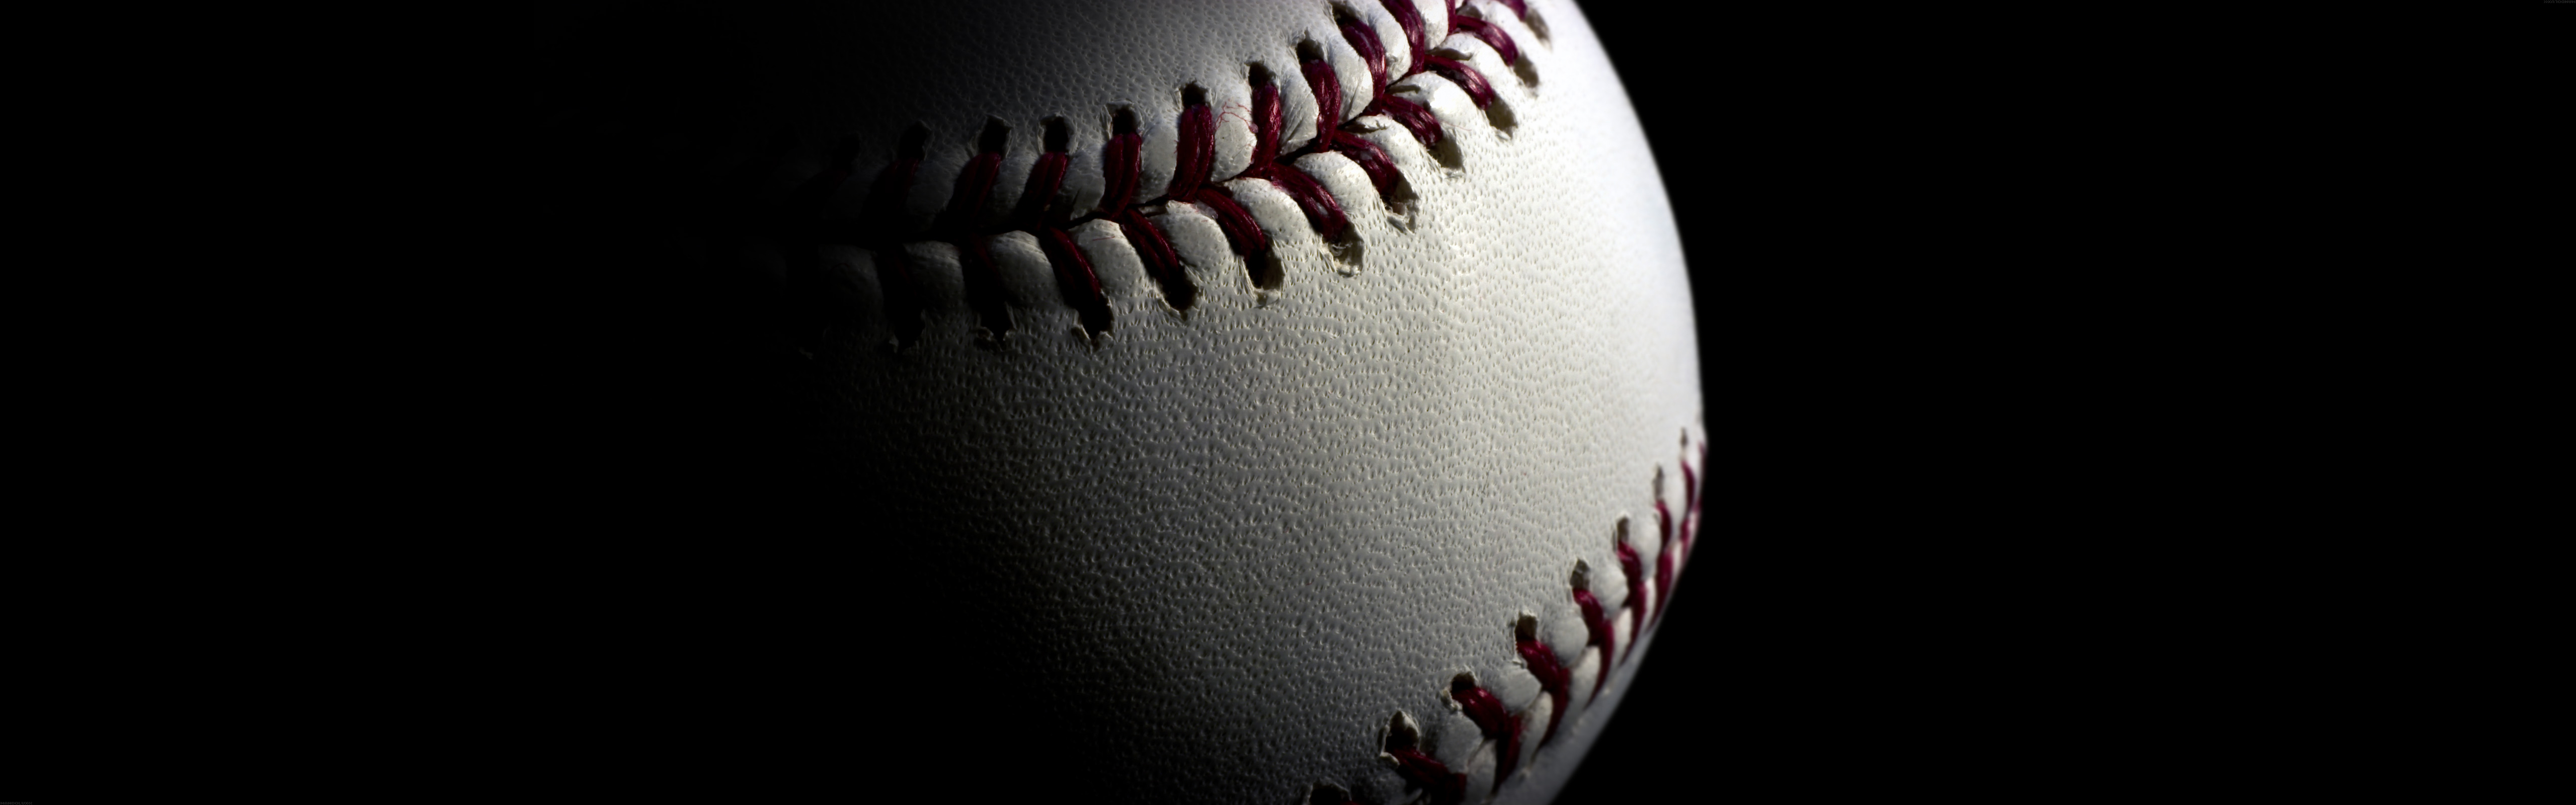 High Quality Baseball Backgrounds Wallpaper Background By Click